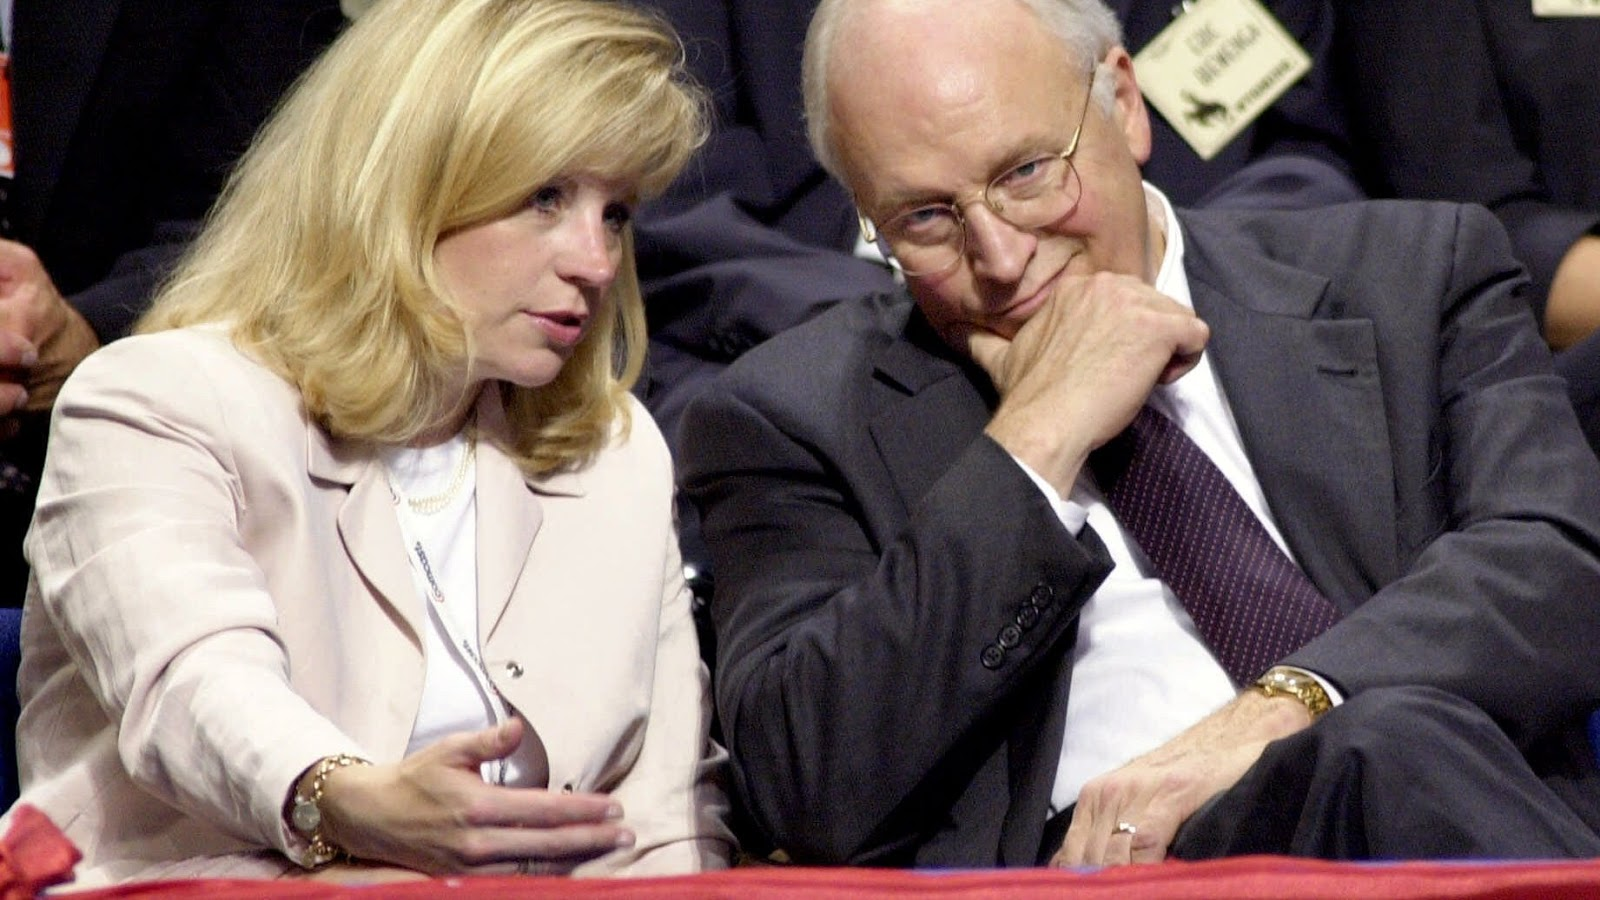 Dick cheney marriage equality